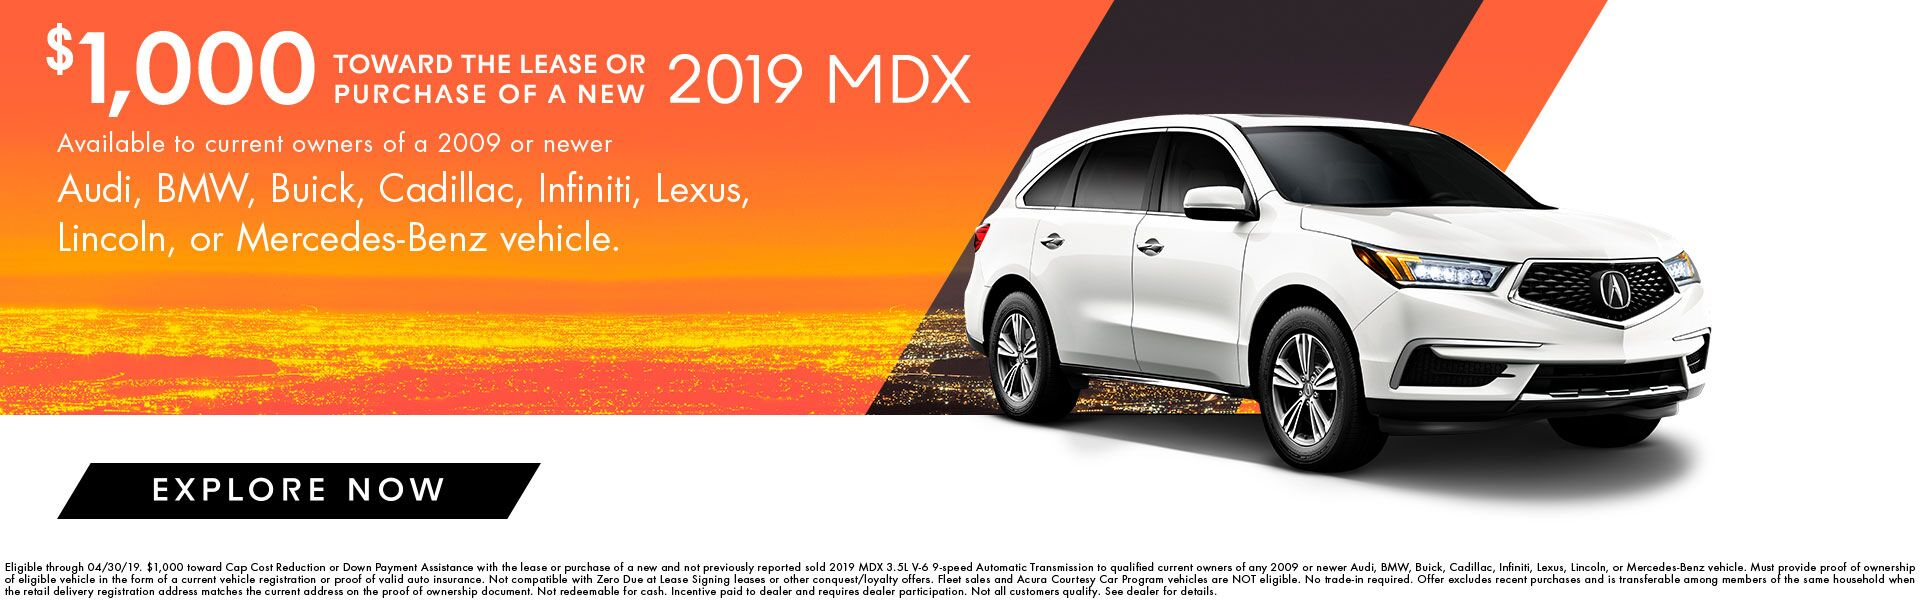 2019 MDX Incentives at Acura of Augusta